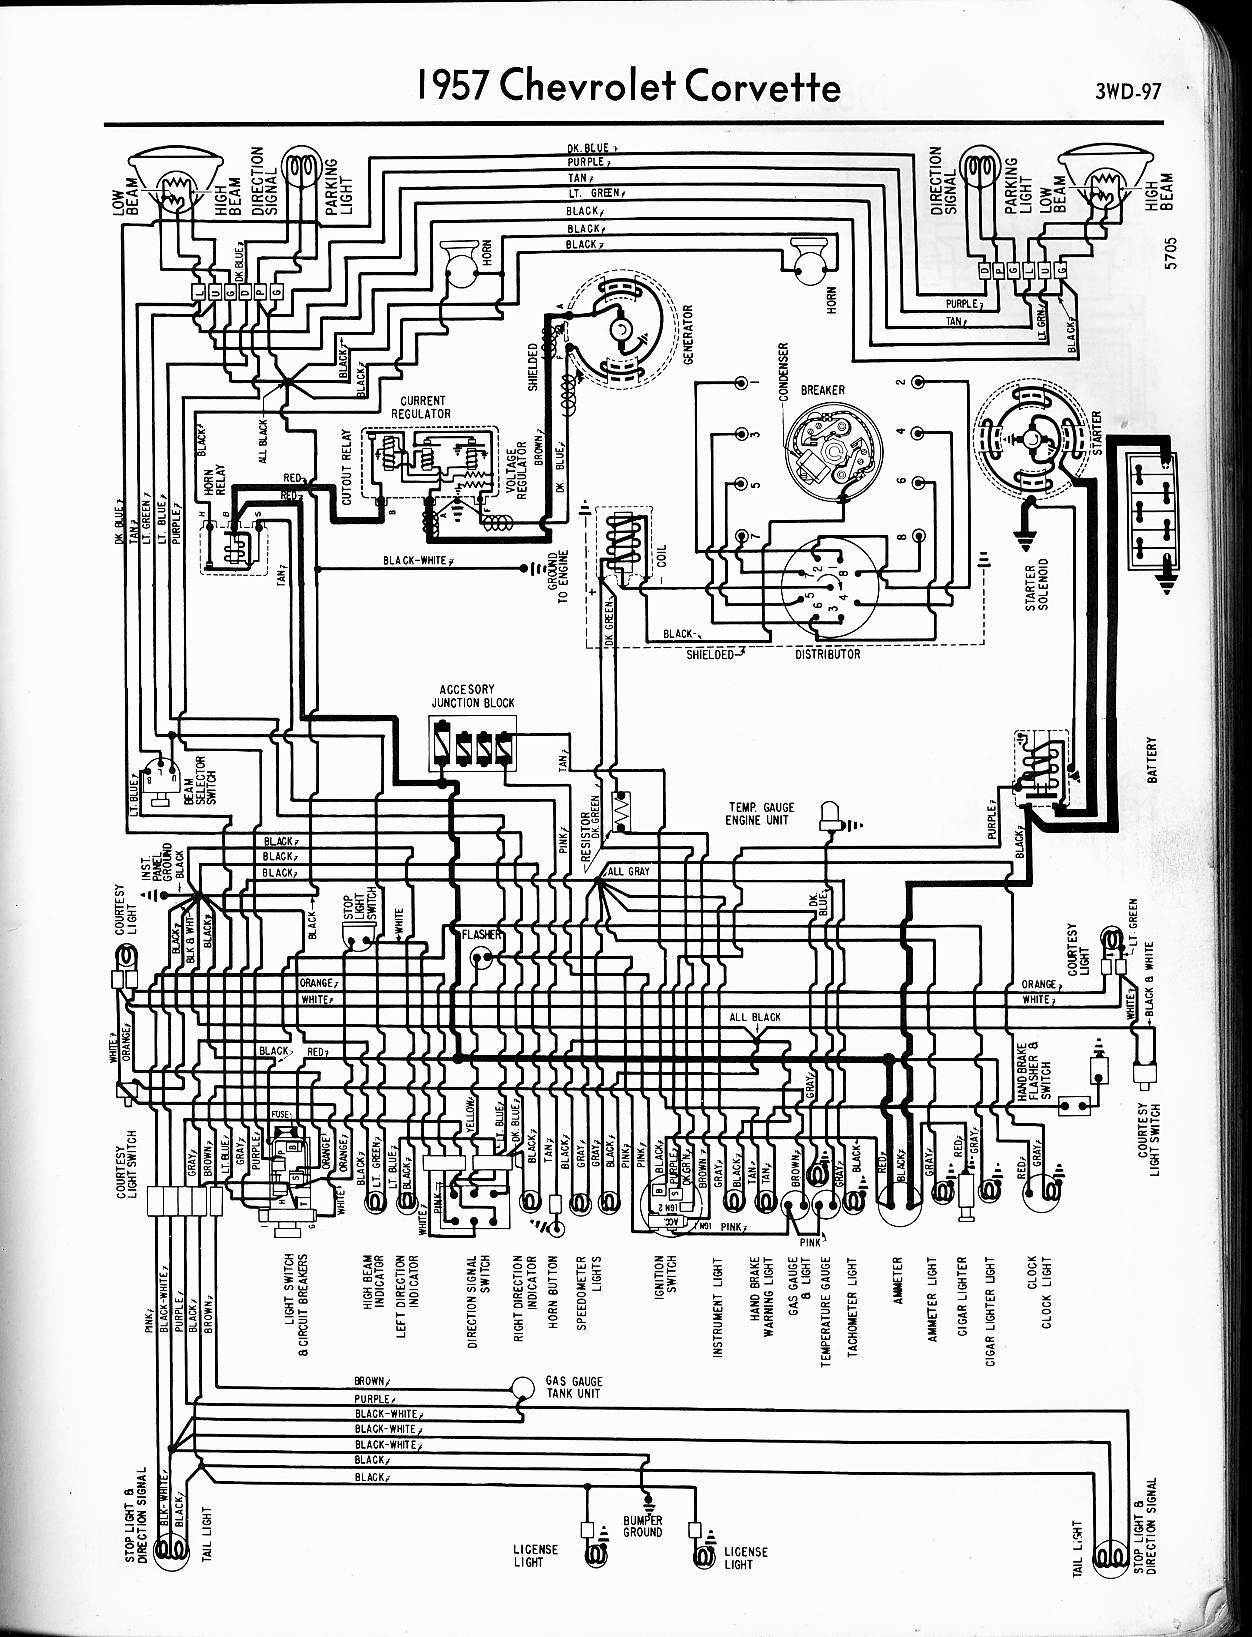 MWireChev57_3WD 097 57 65 chevy wiring diagrams 57 chevy truck wiring harness at aneh.co